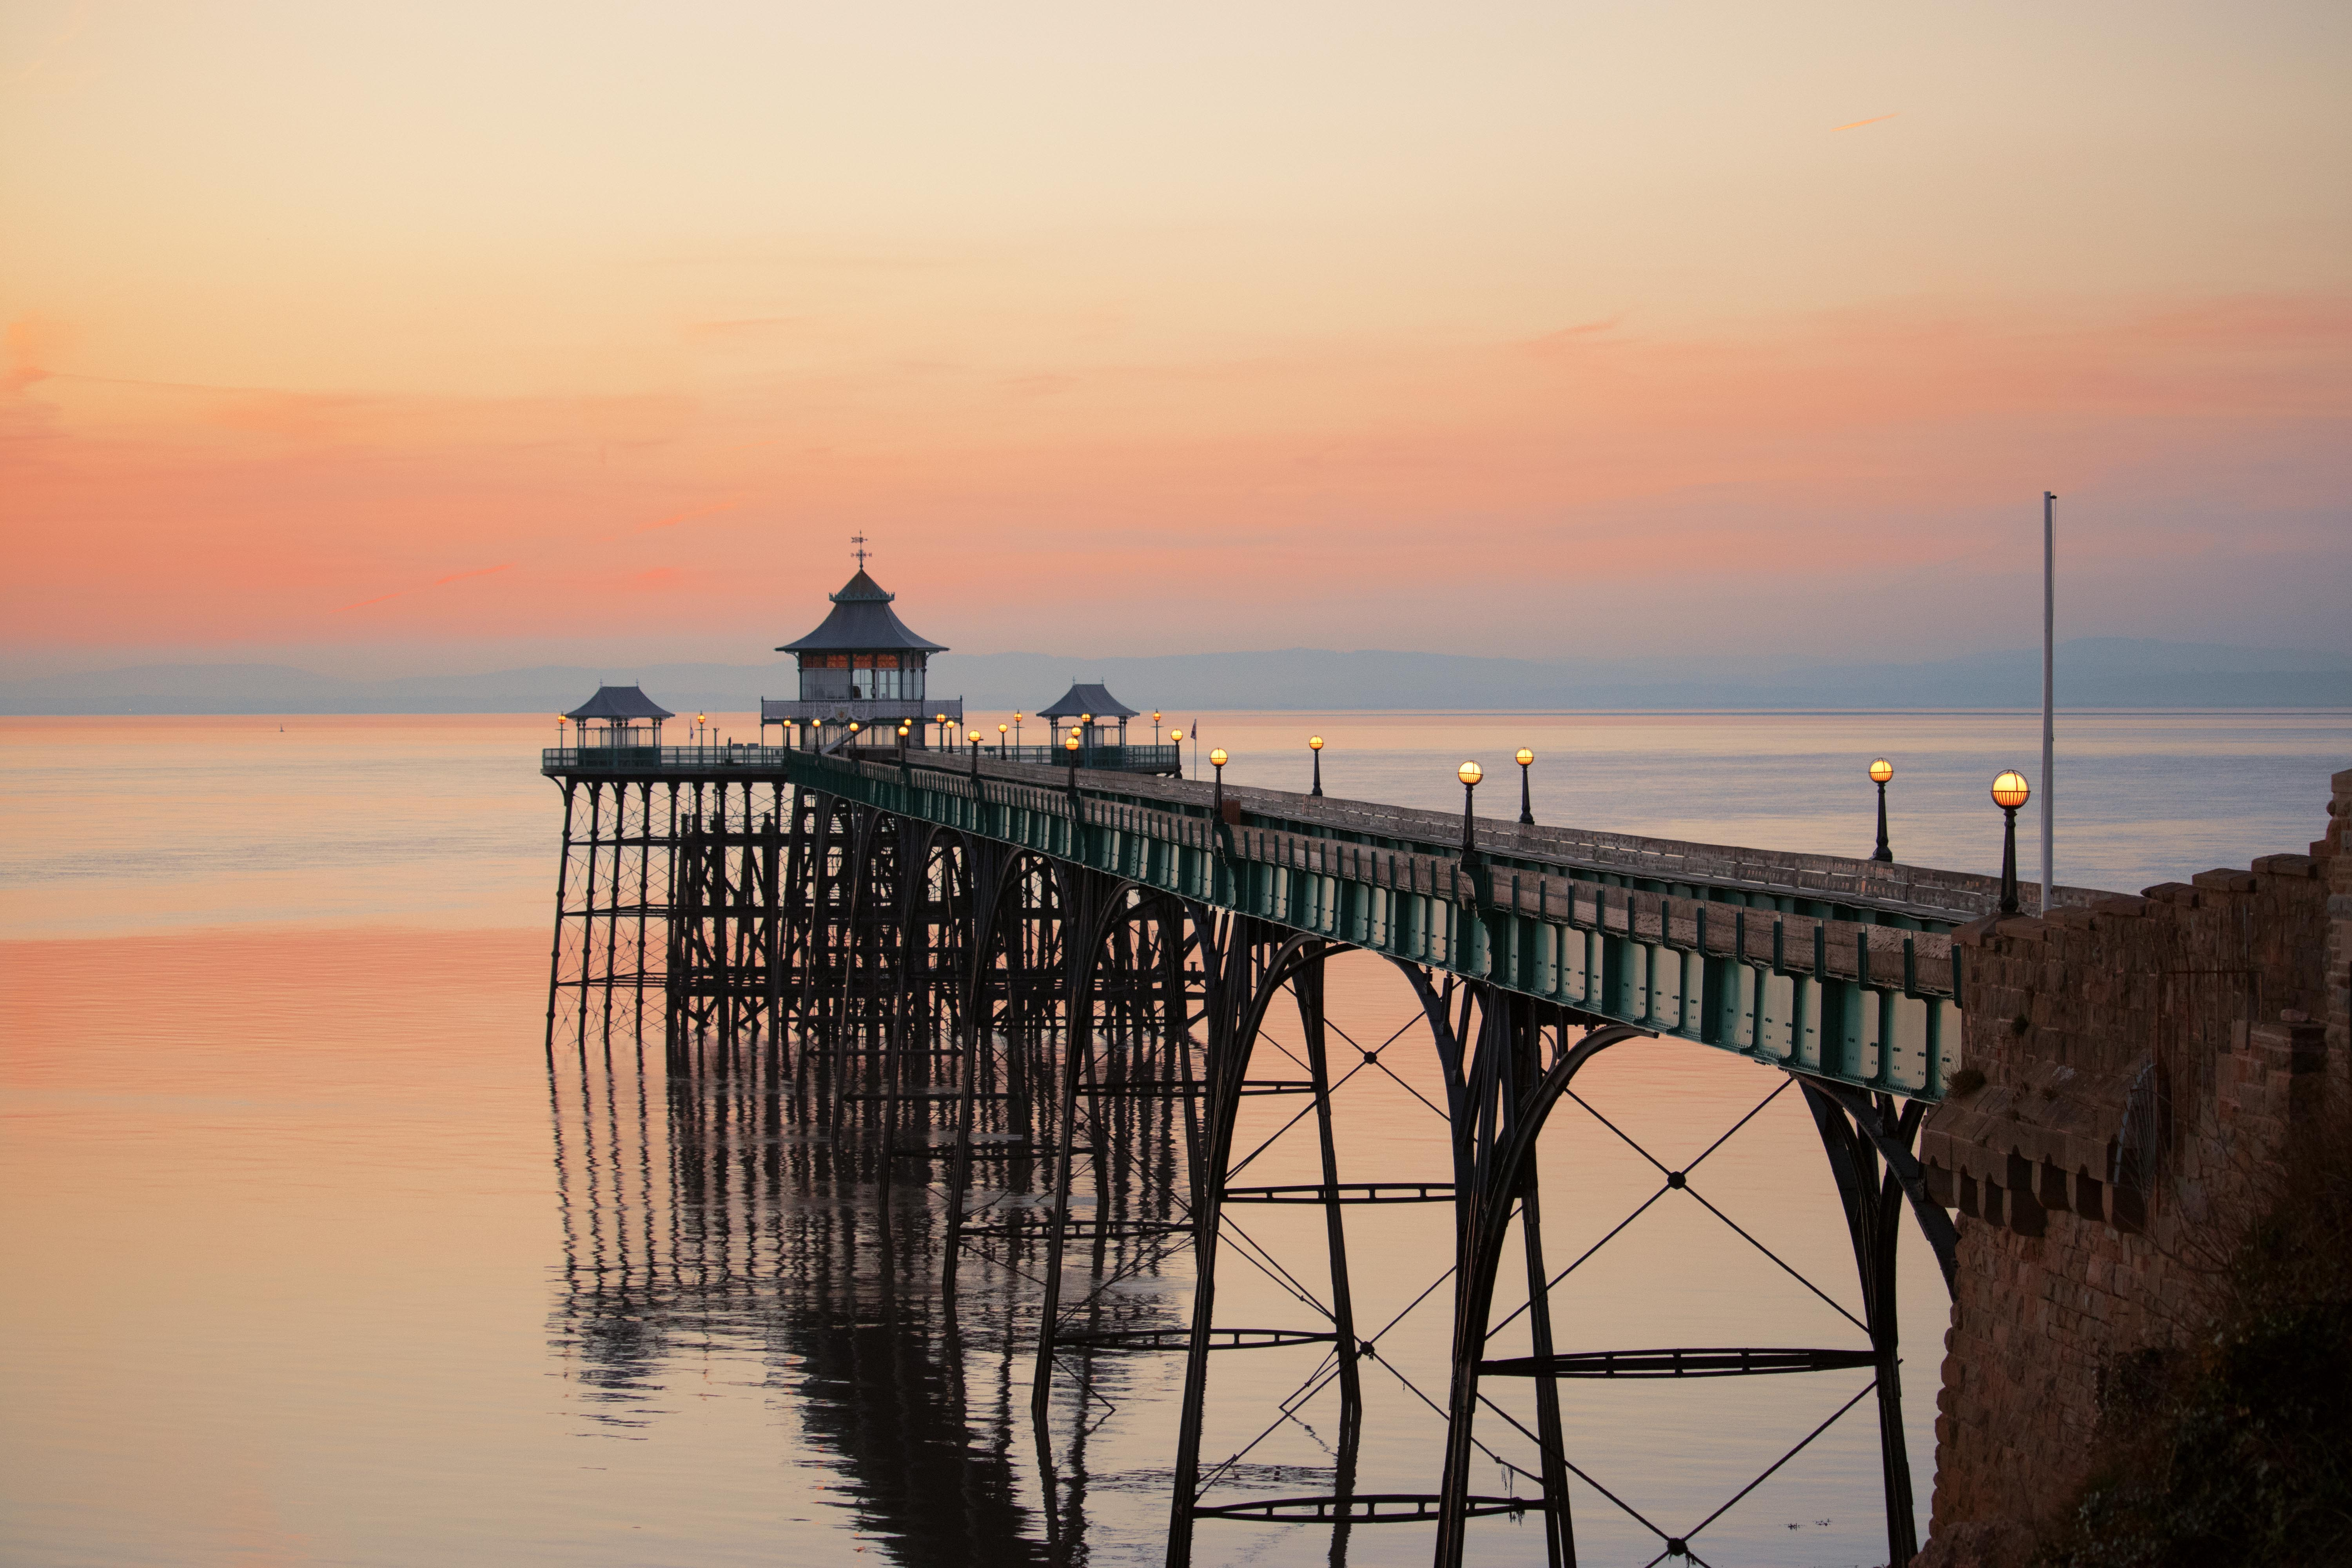 Landscape Photography Clevedon Pier At Sunset